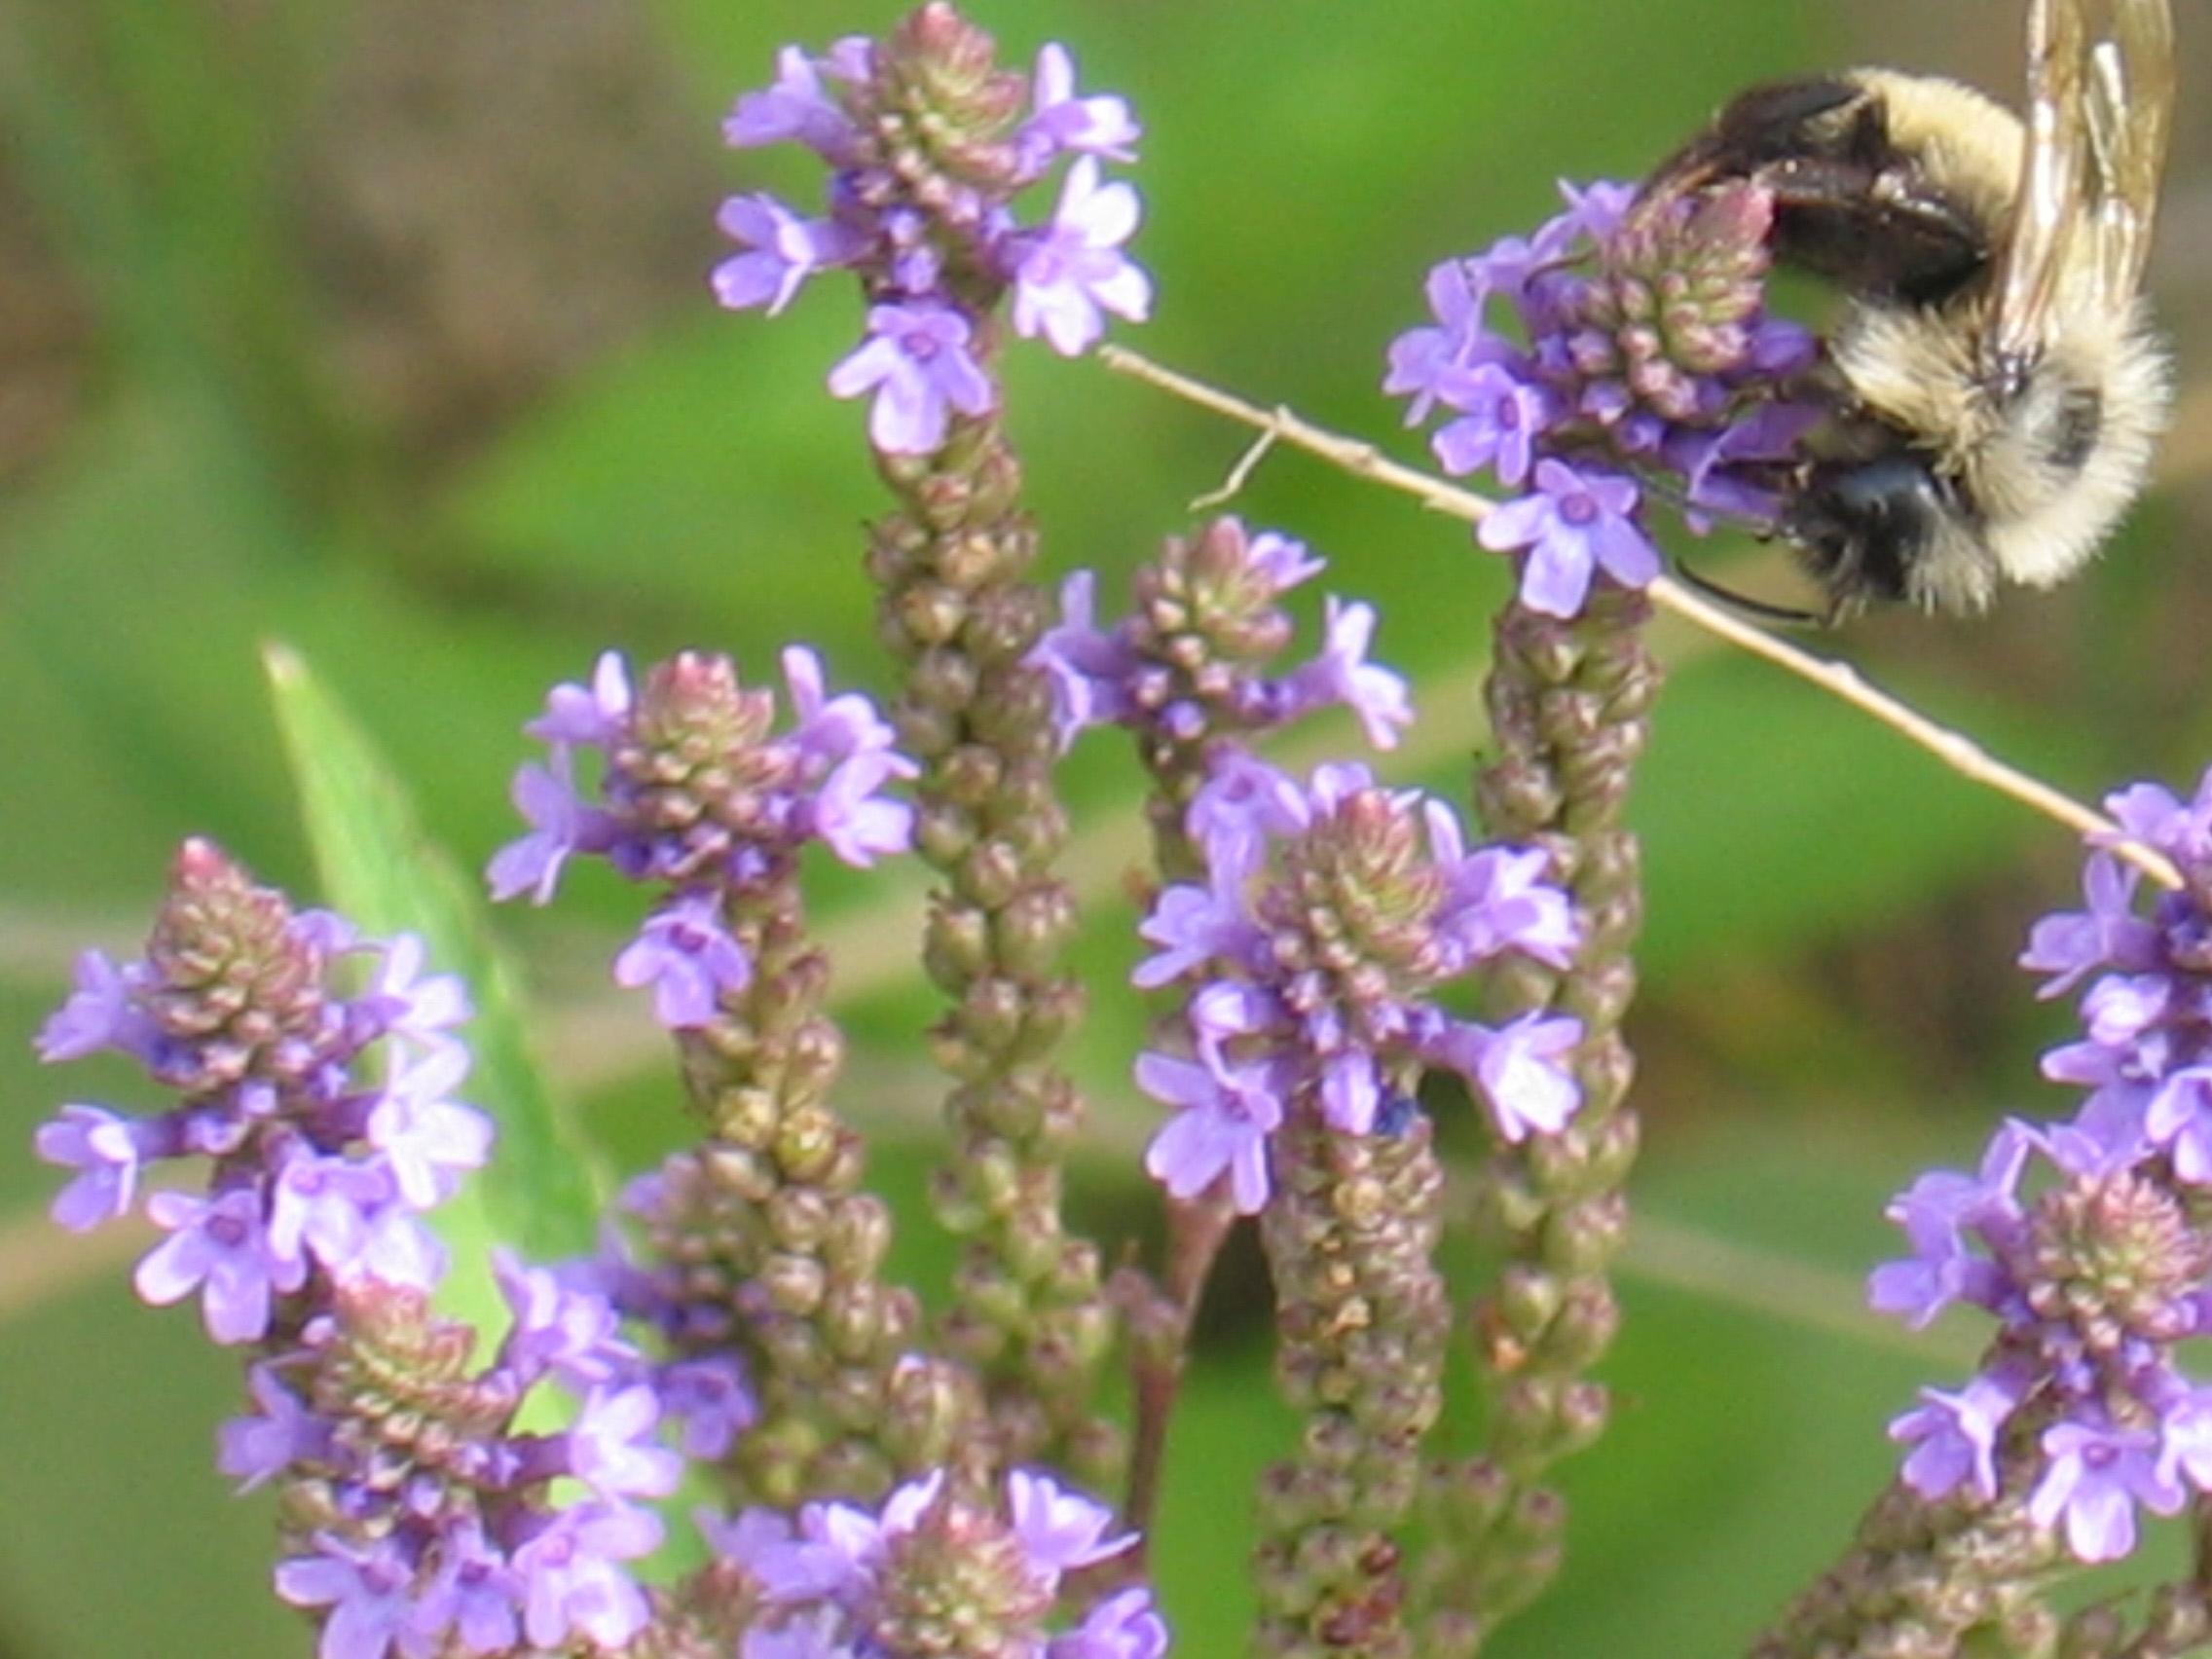 Honey bee on native butter fly-weed photo by KRISTIN FAUXTEW